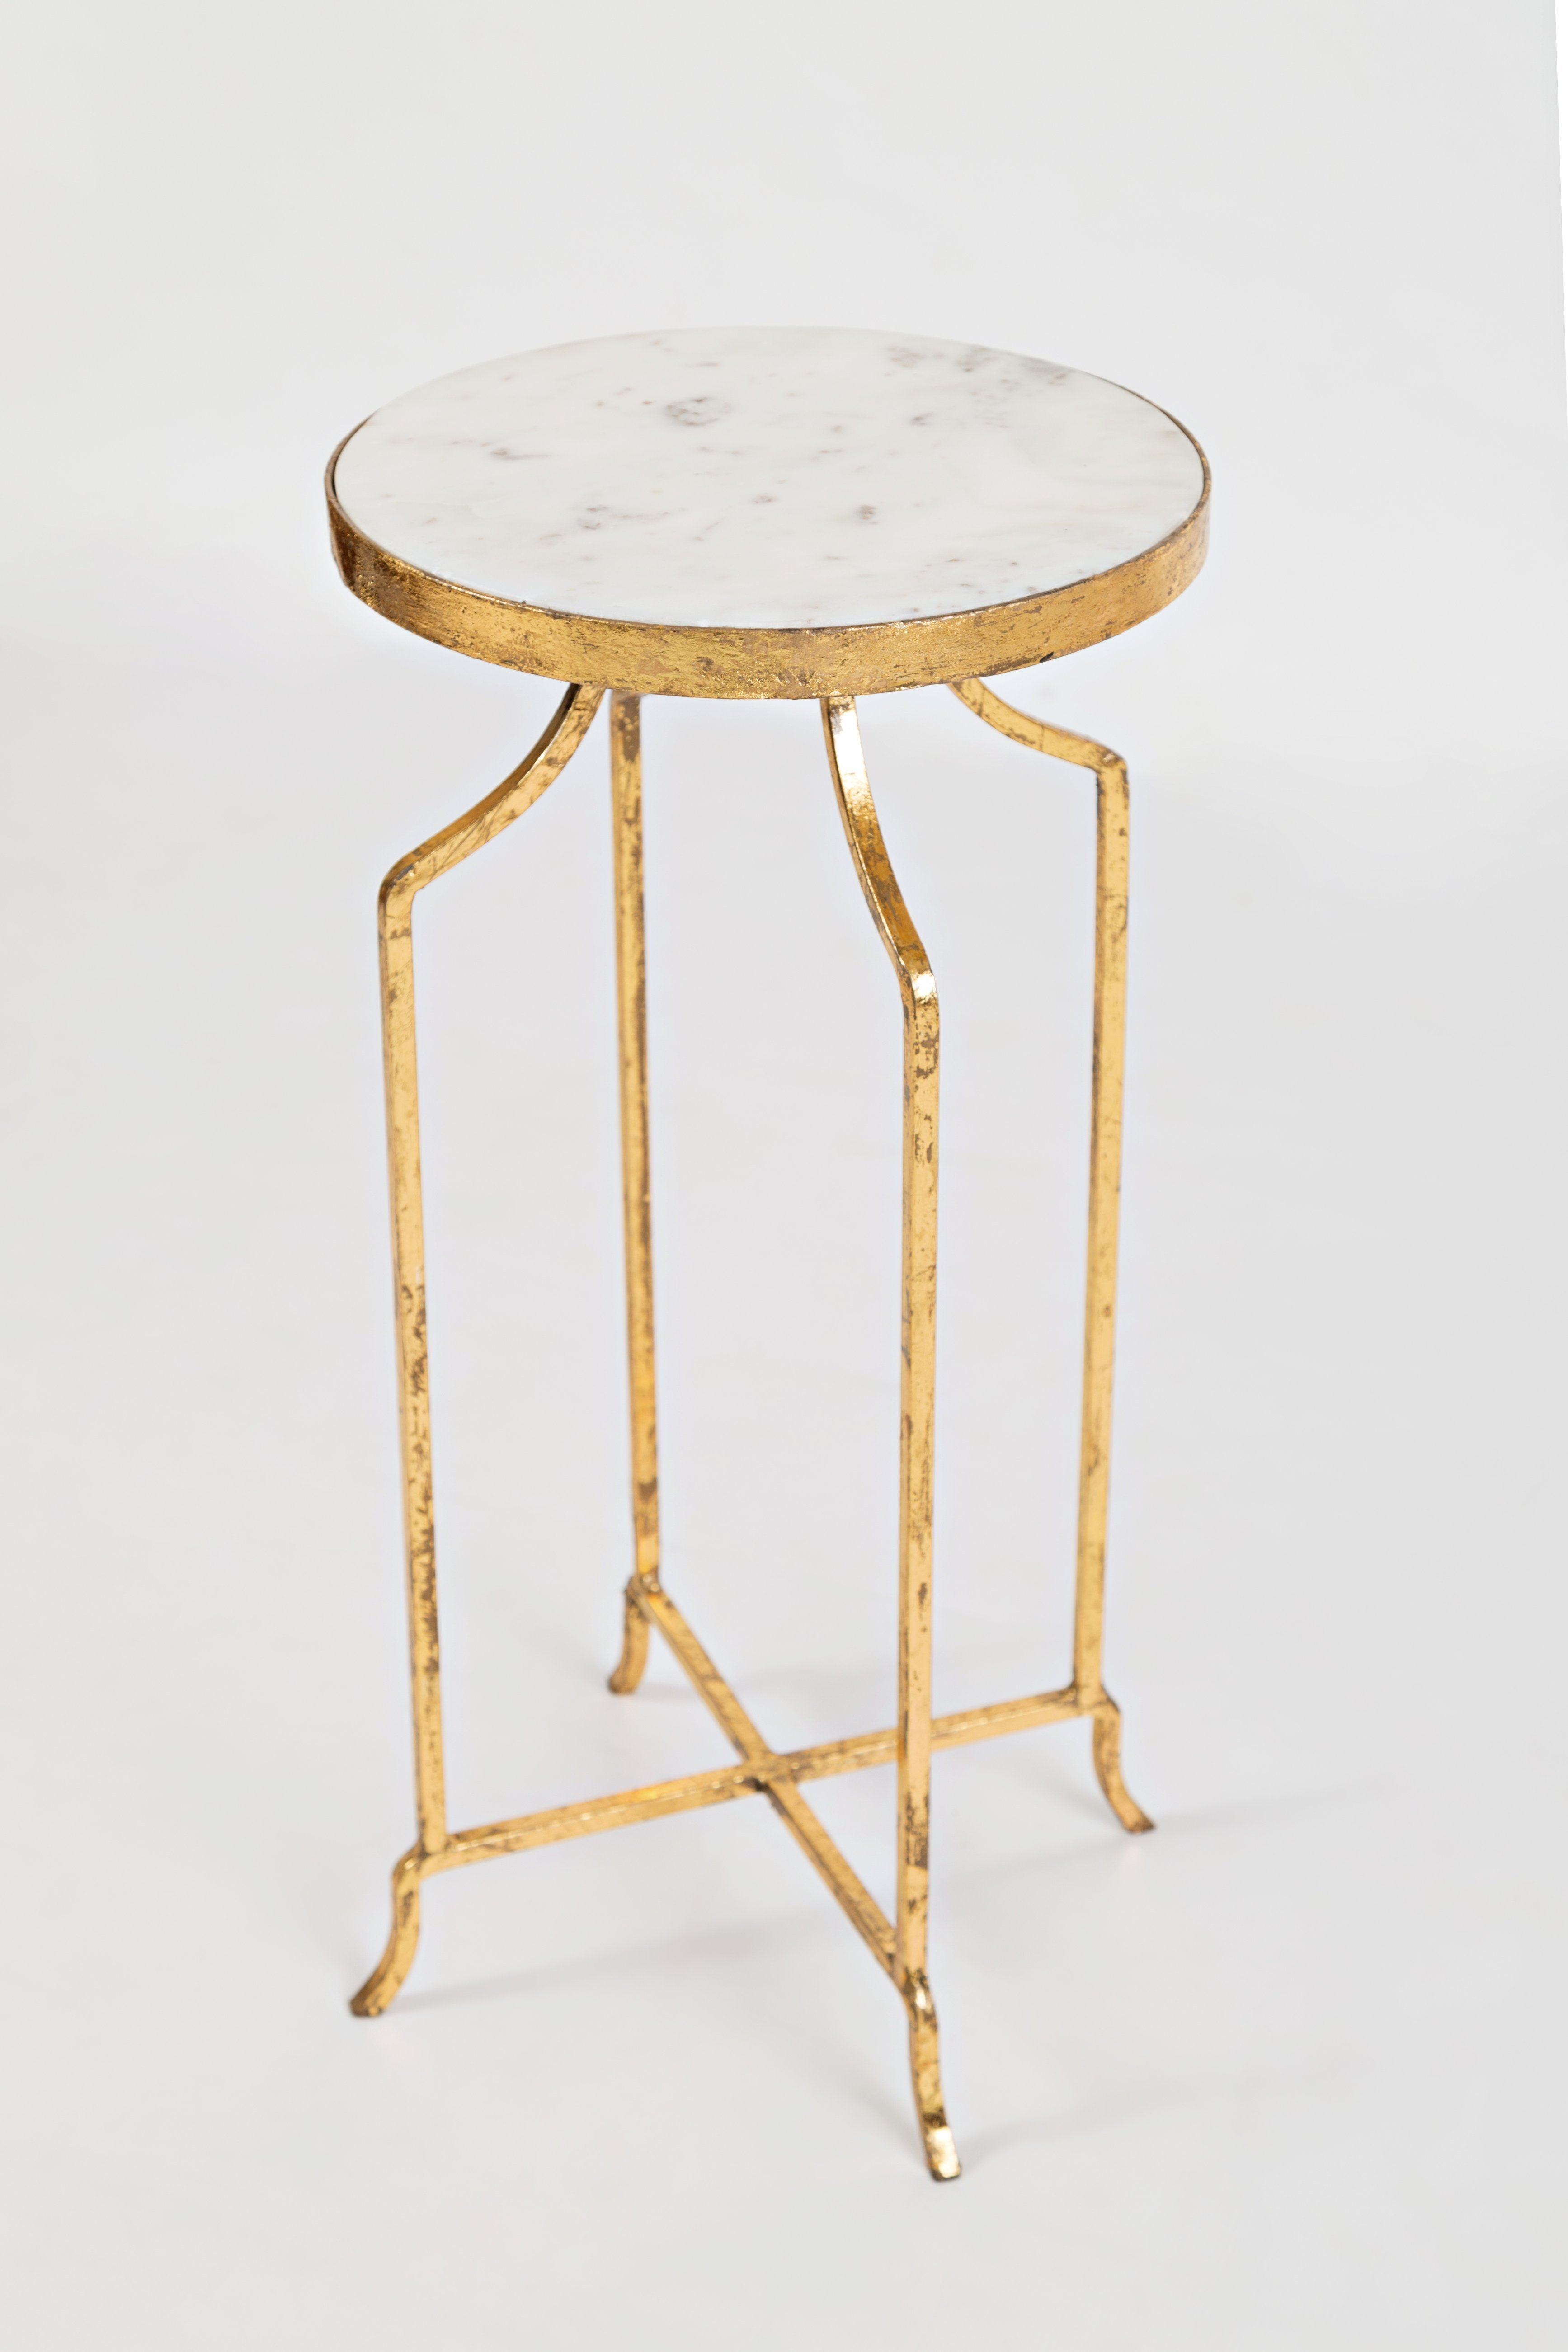 marble and gold round accent table with angled metal feet products garden only steel furniture legs tiffany stained glass chairs under extendable trestle dining side set mirror